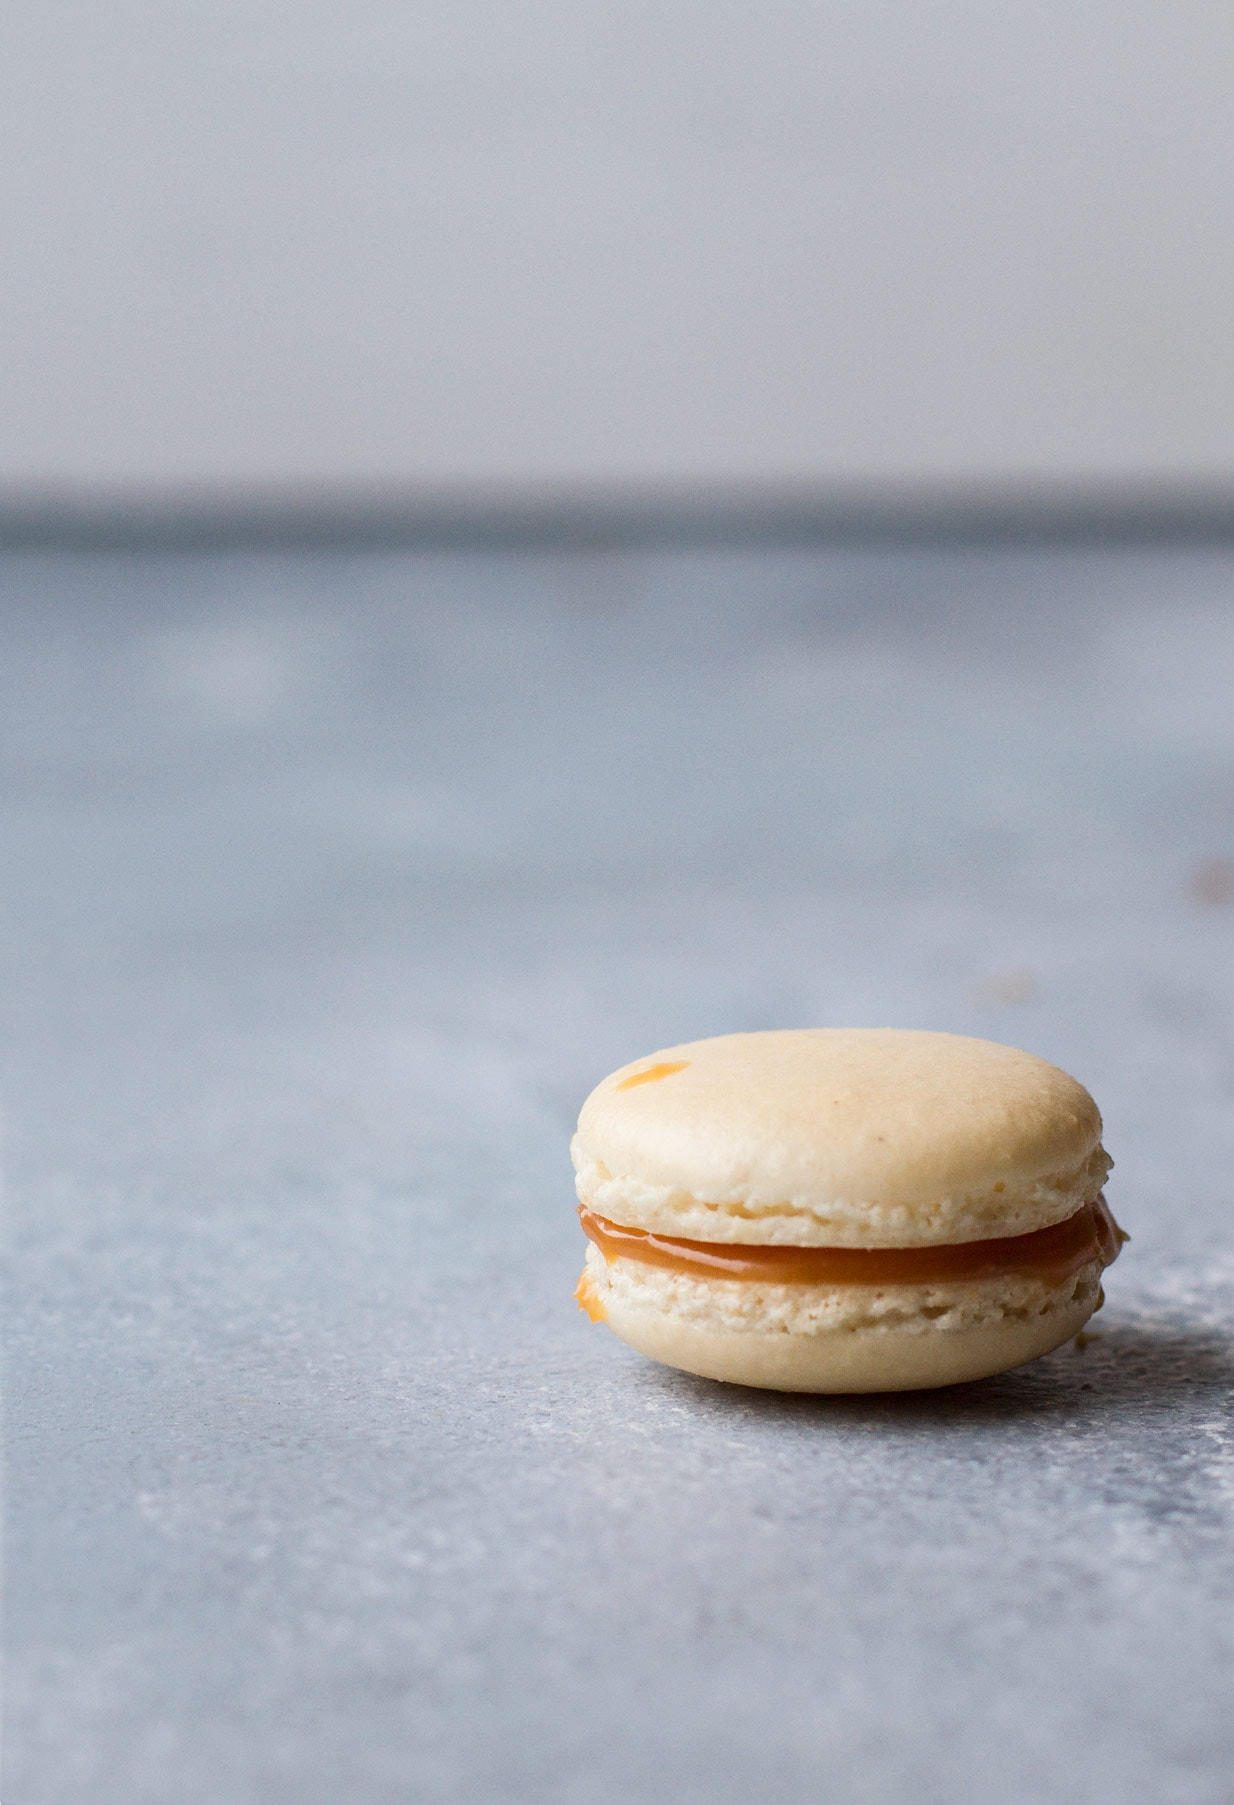 a single Salted Caramel Macaron with Homemade Caramel in the right corner, blue blurry background.